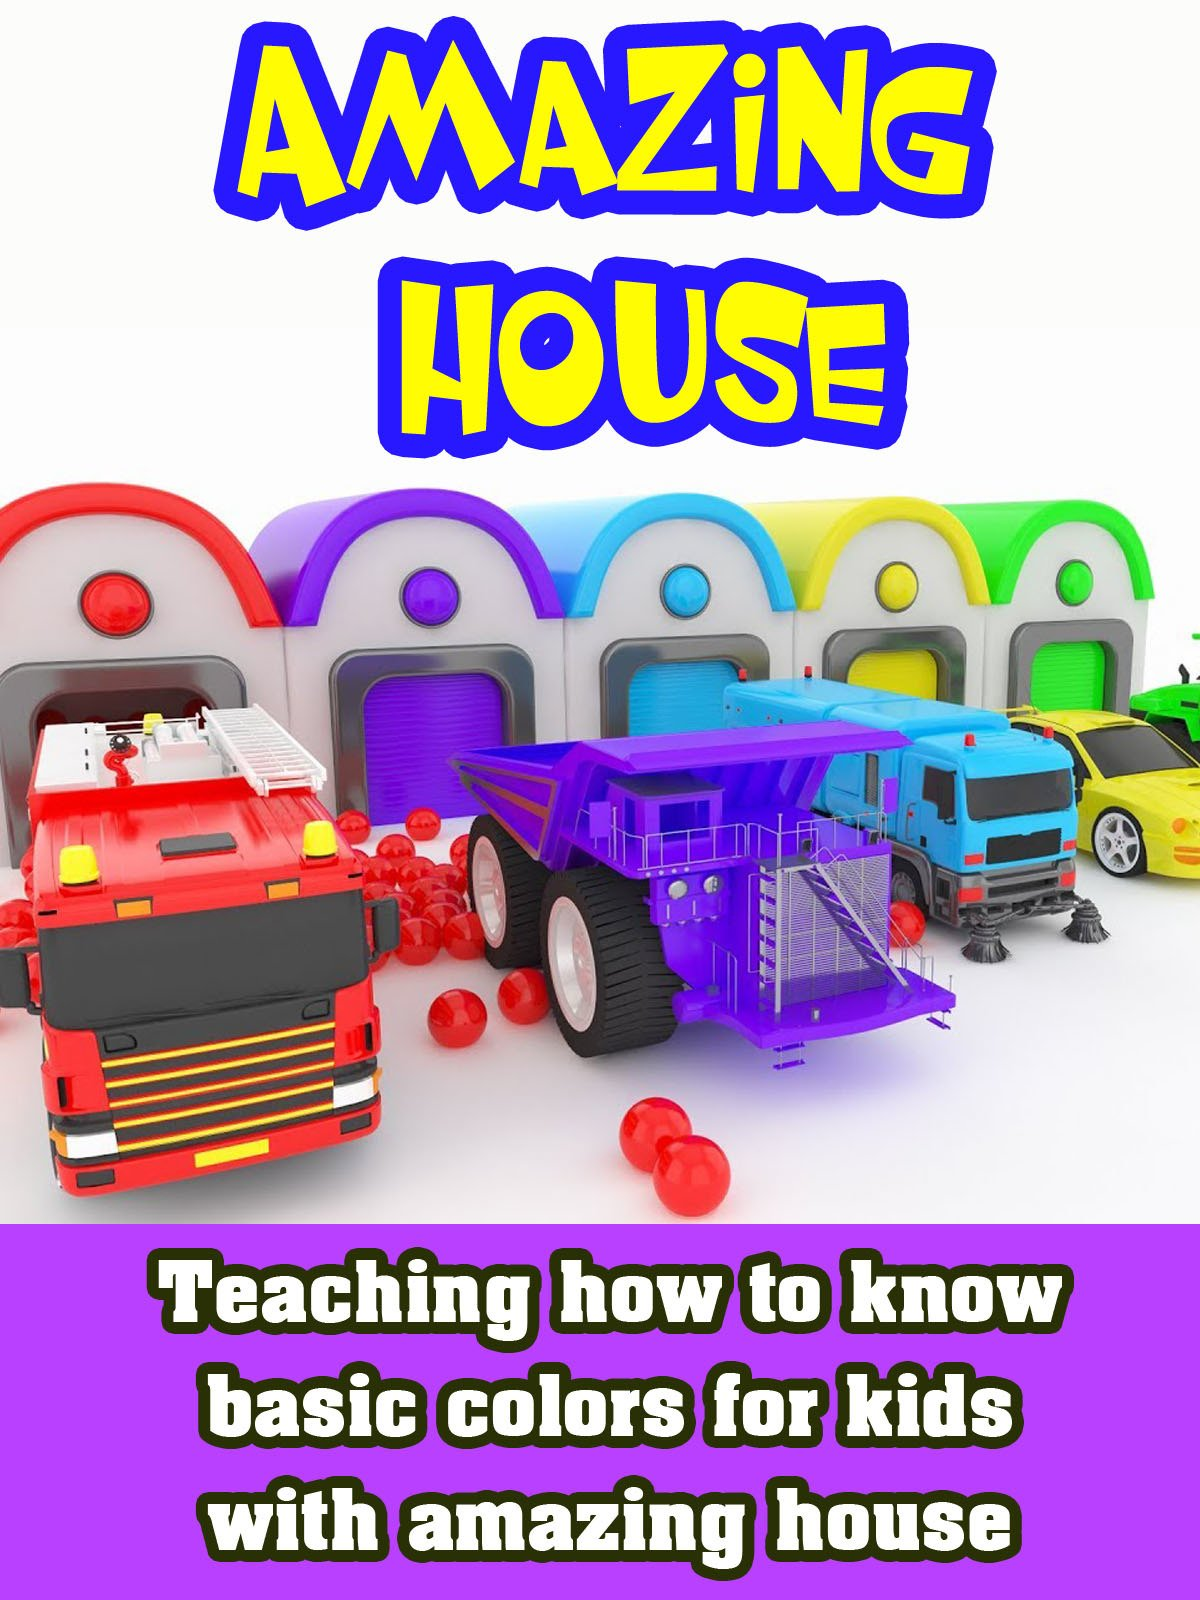 Teaching how to know basic colors for kids with amazing house